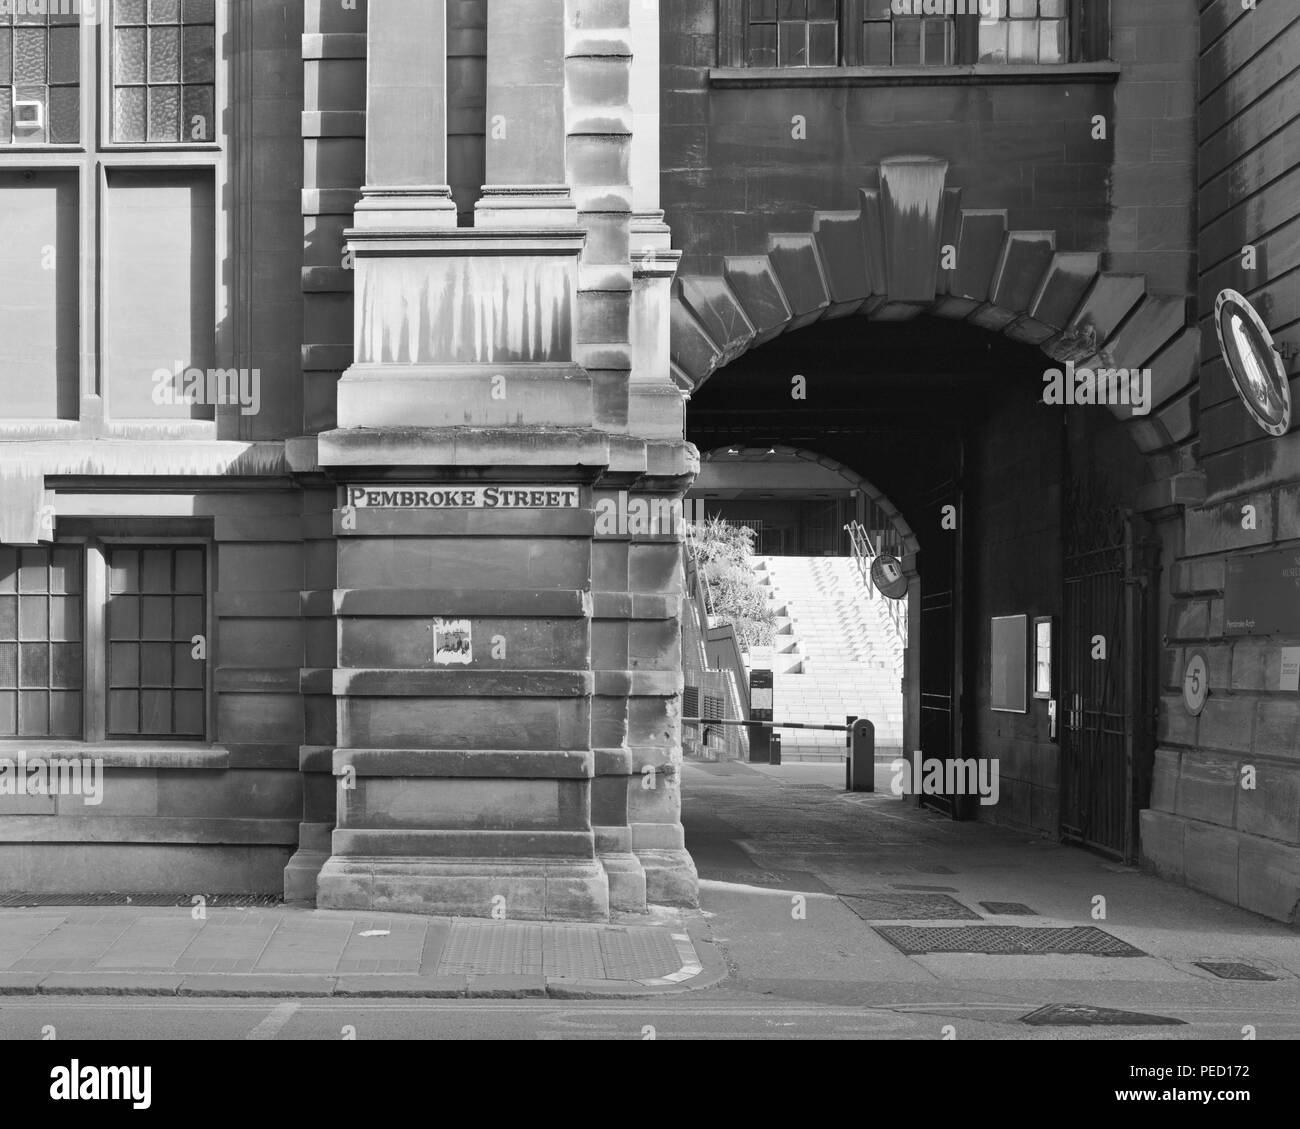 Pembroke Arch entrance to the Cambridge Museum of Zoology - Stock Image